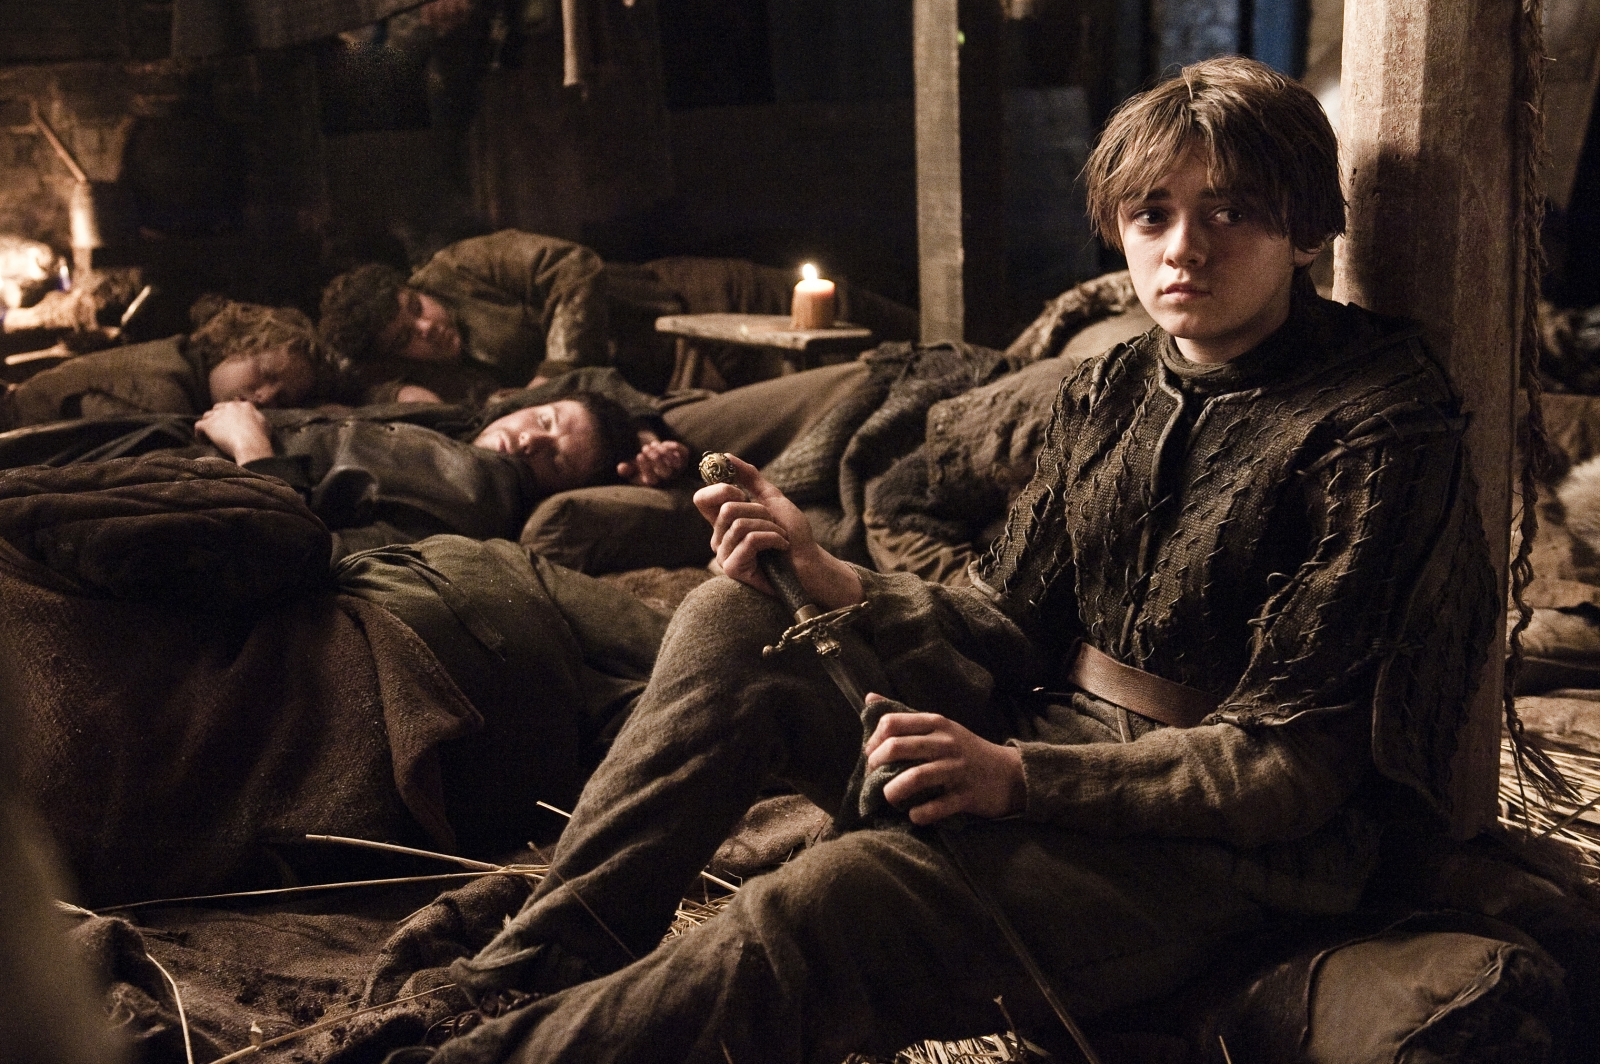 Arya Stark, as played by Maisie Williams in Game of Thrones